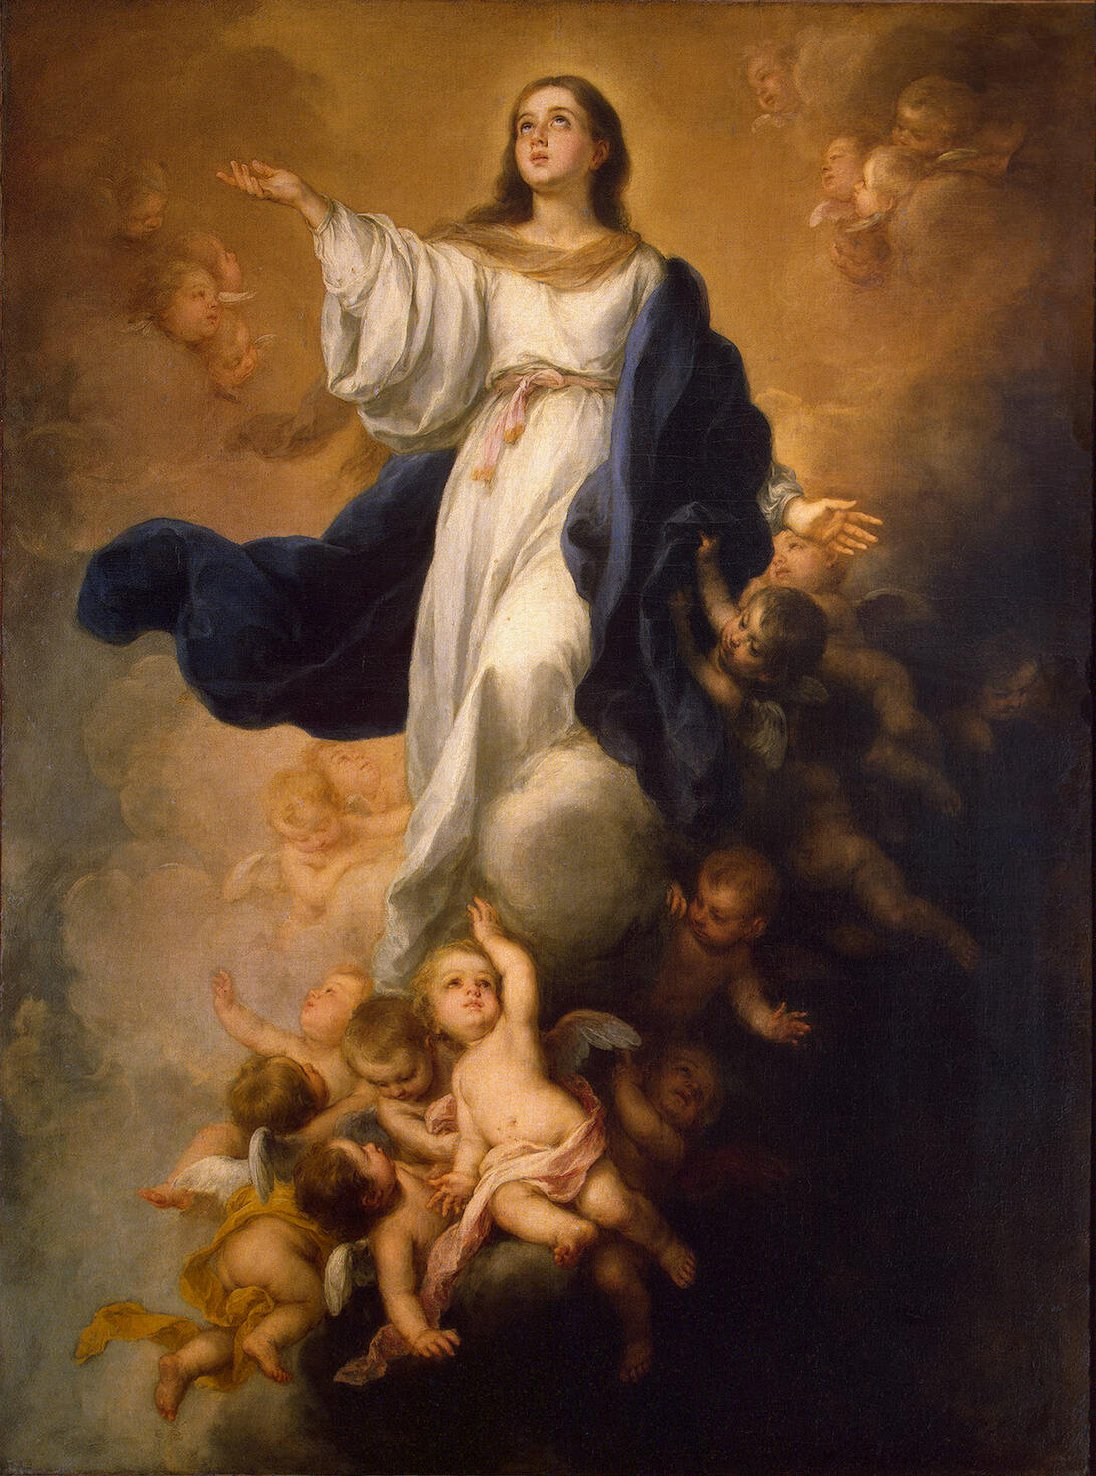 The Assumption of the Blessed Virgin Mary at Shrewsbury